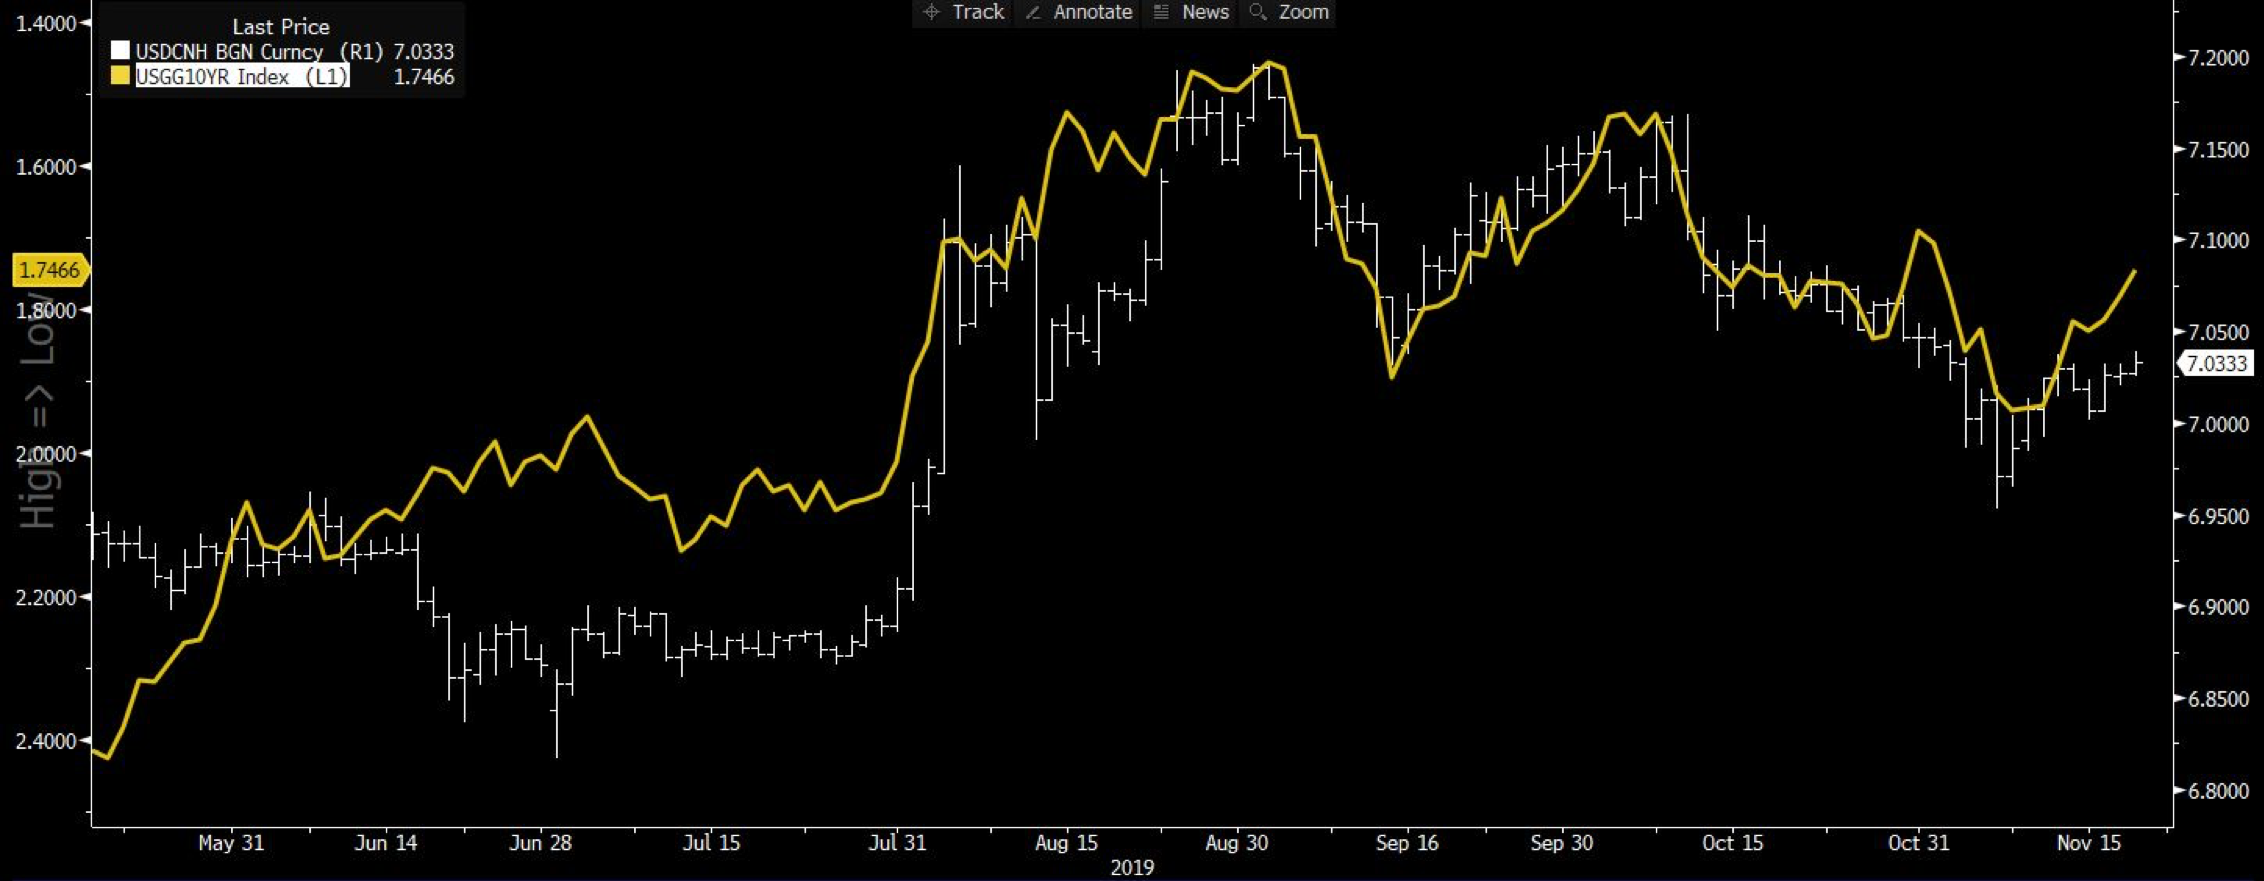 USDCNH currency chart